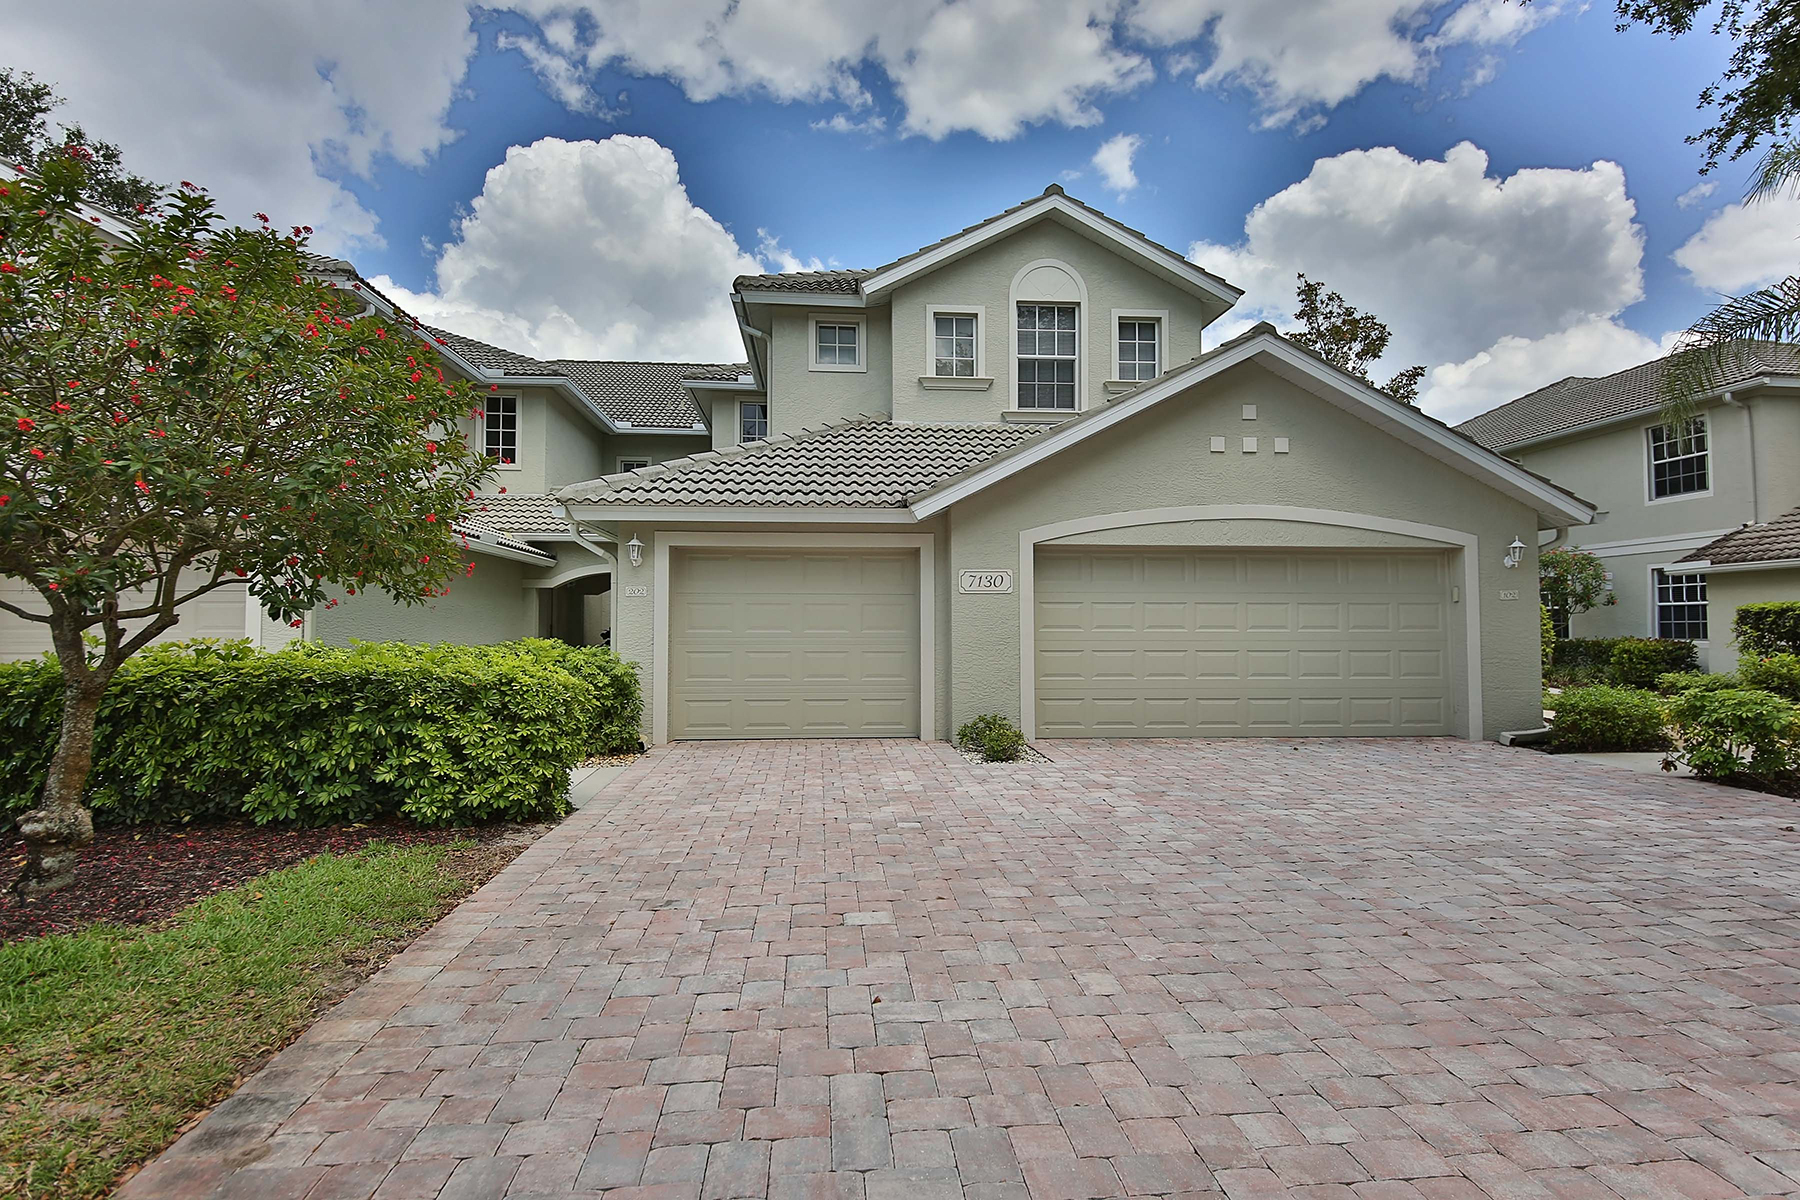 Condominium for Rent at AUTUMN WOODS - CEDAR RIDGE 7130 Blue Juniper Ct 202, Naples, Florida 34109 United States